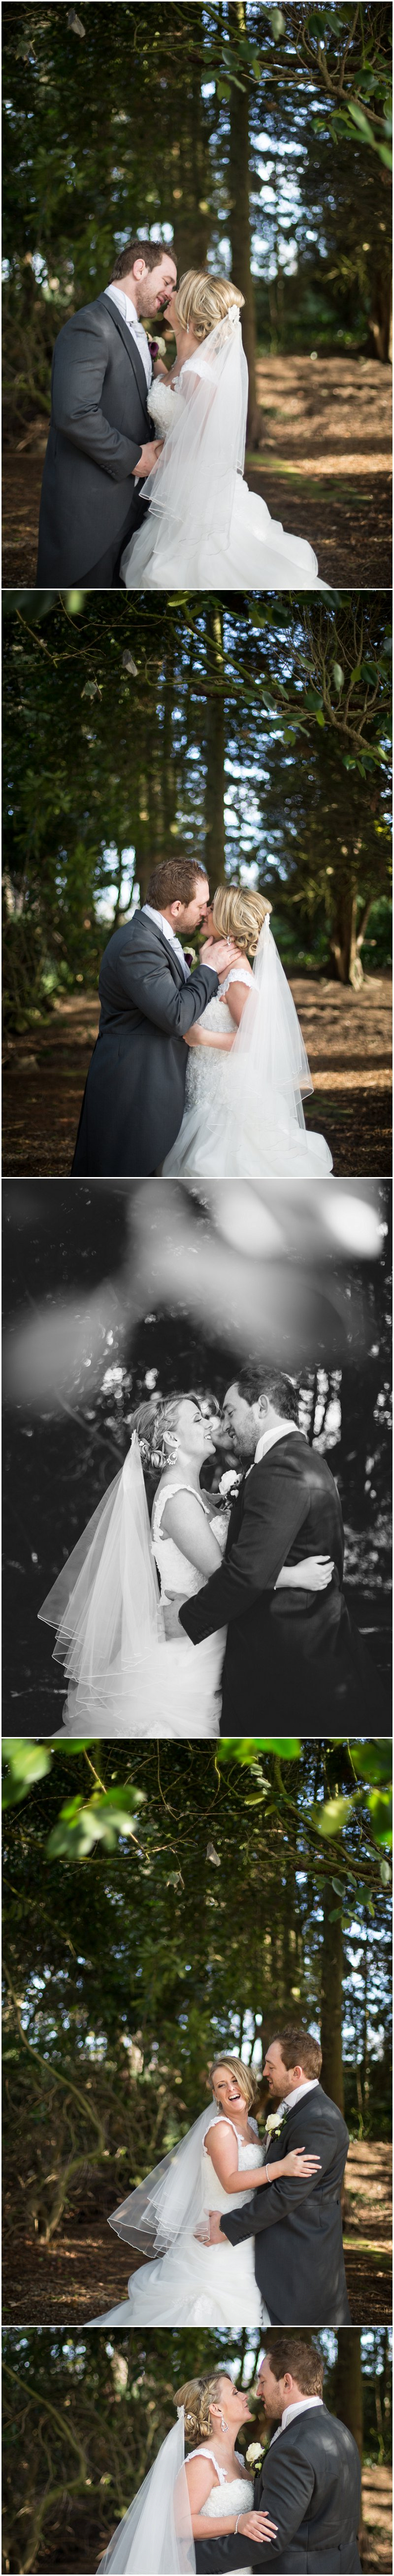 Beautiful bride and groom portraits at Knutsford Cheshire Wedding